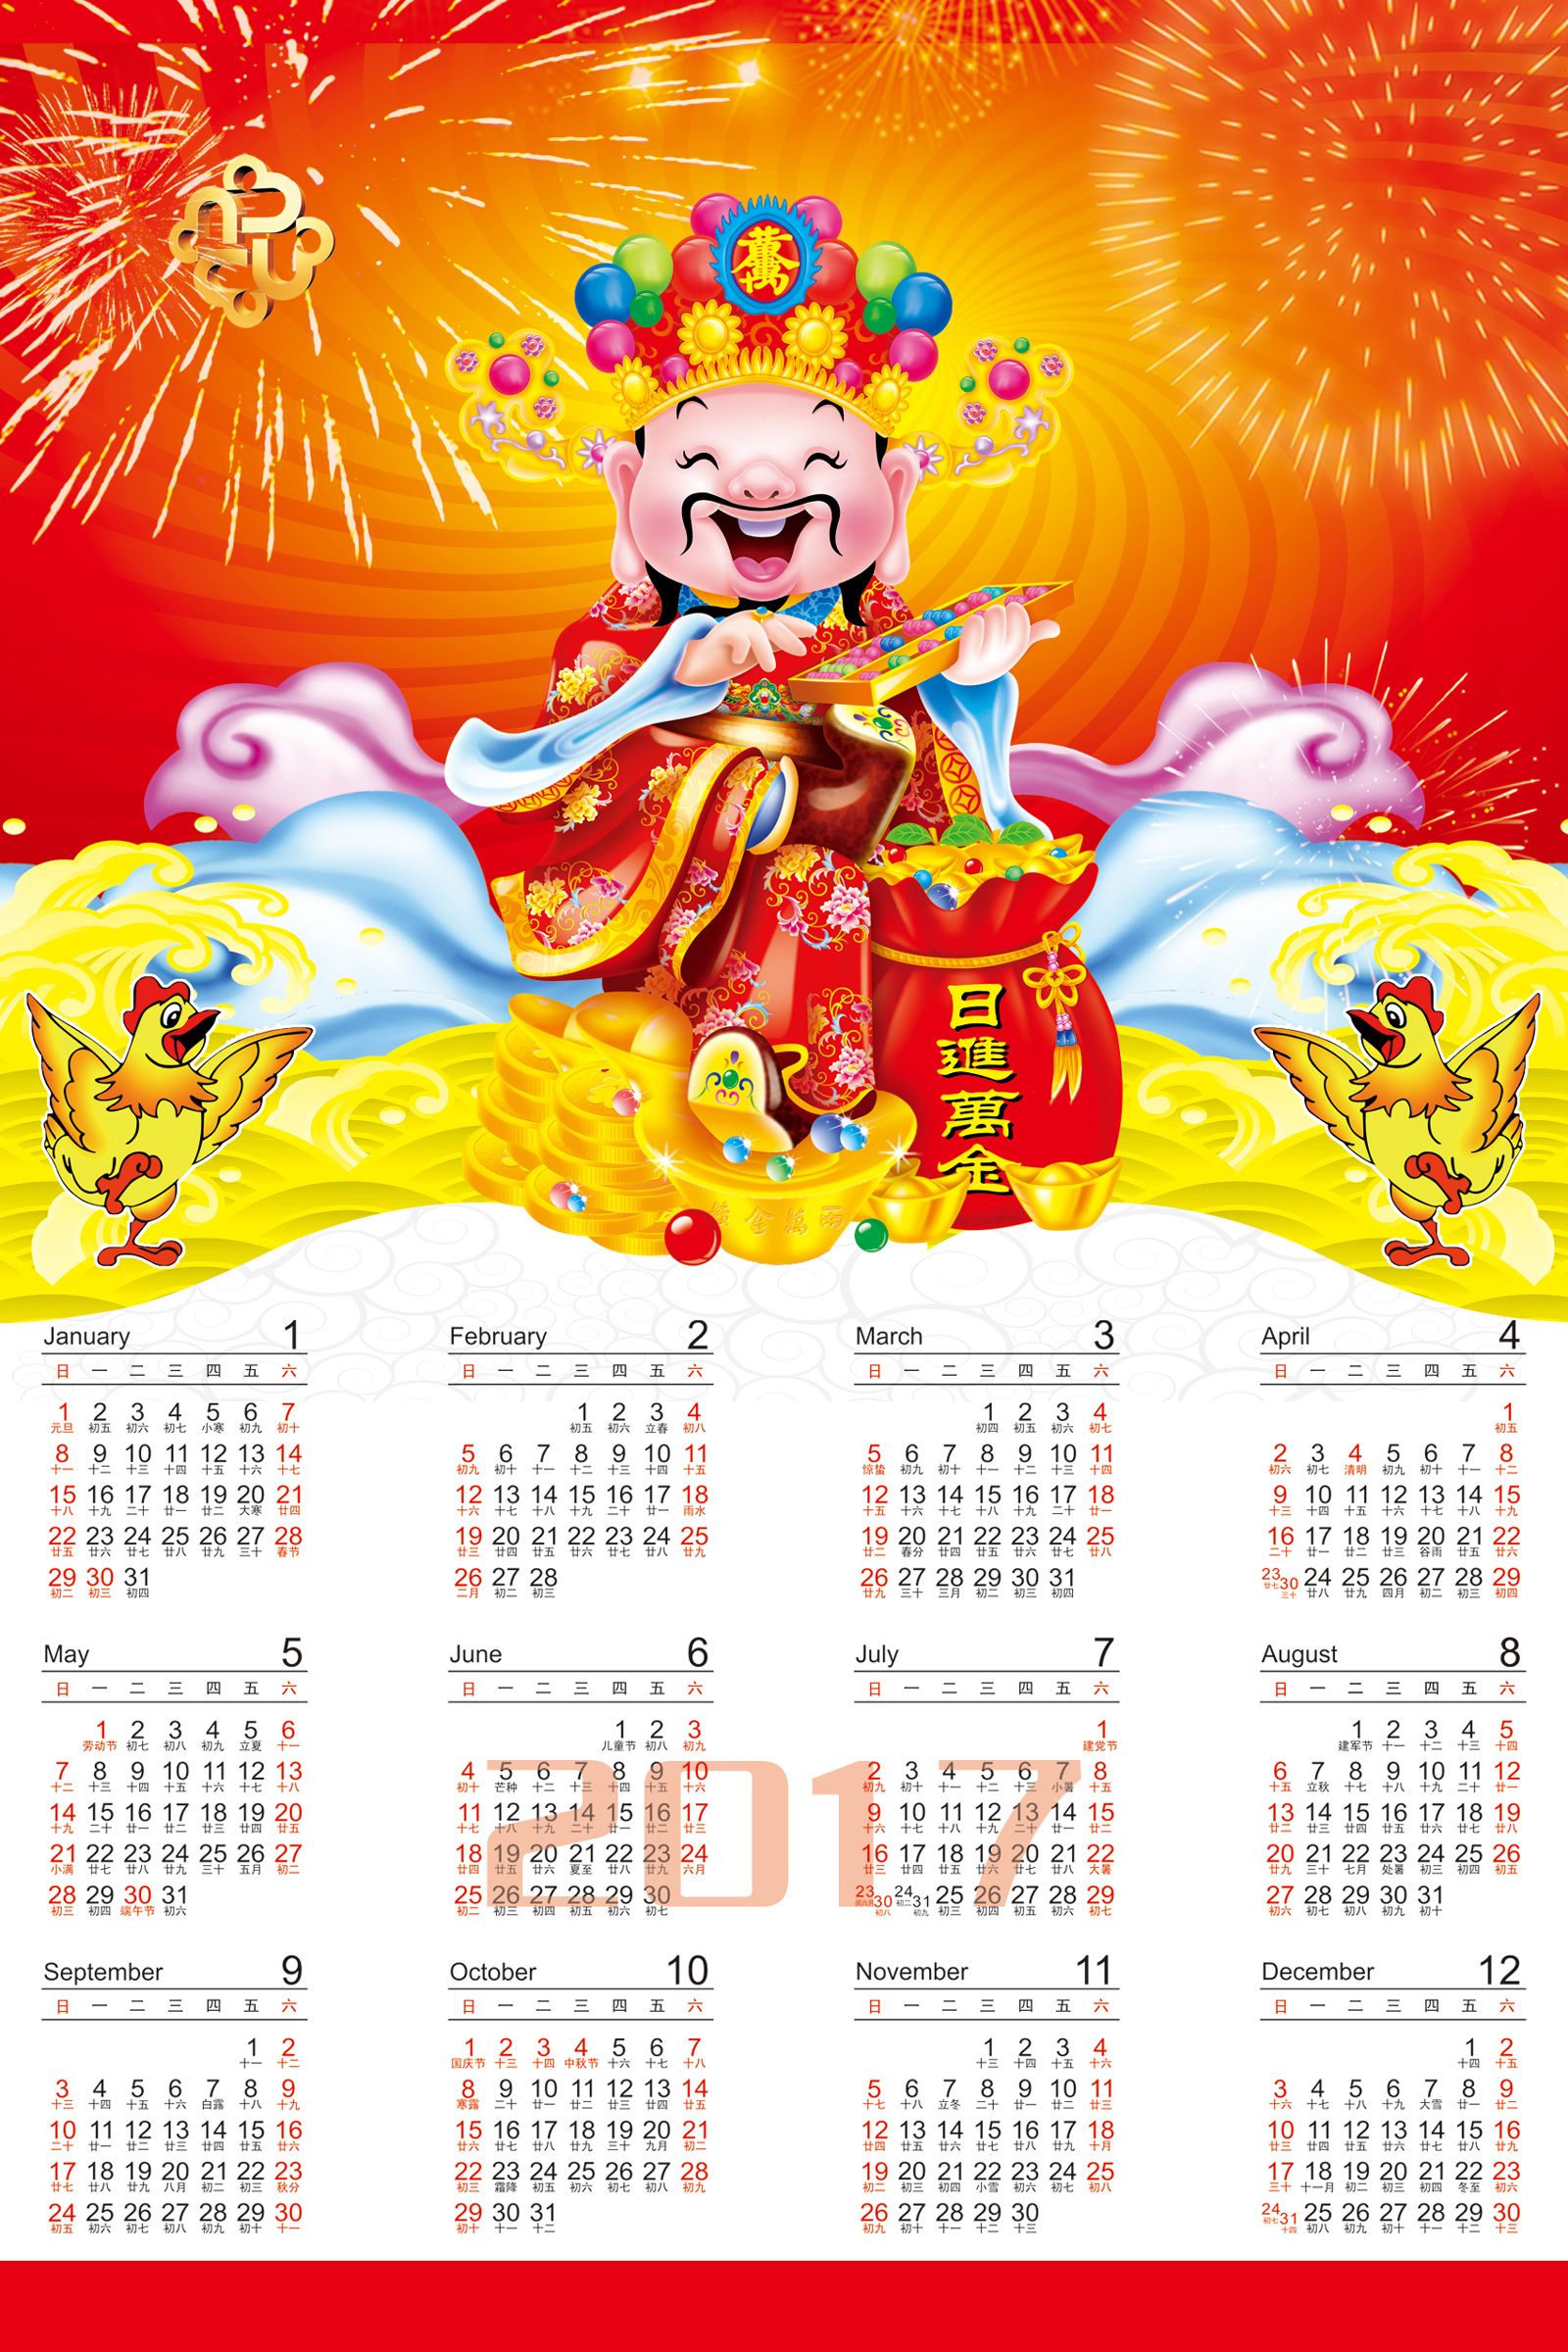 2017 desk calendar (Kung hei fat choi)PSD File Free Download